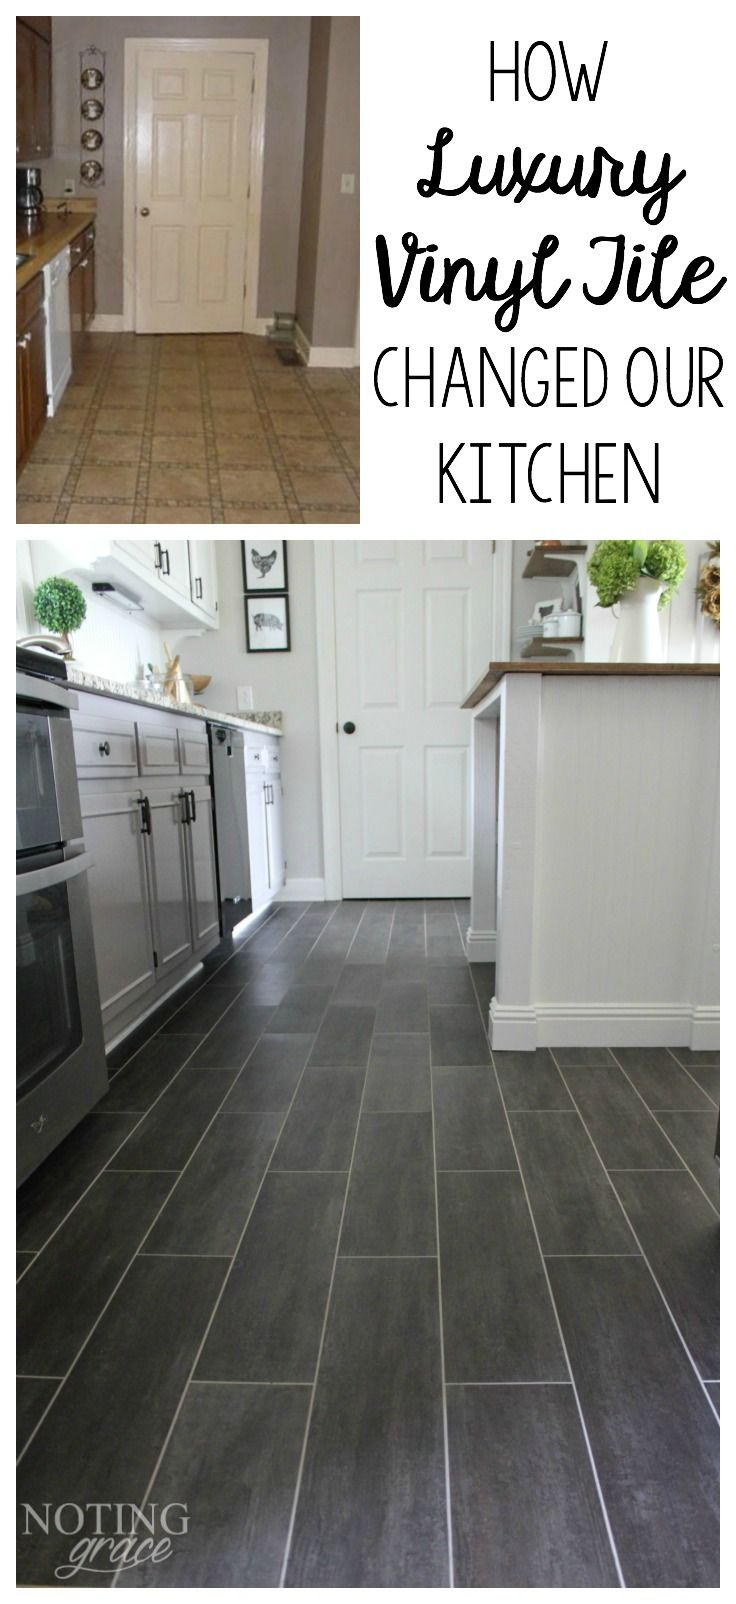 Laminate Flooring In Kitchens 17 Best Ideas About Kitchen Flooring On Pinterest Kitchen Floors